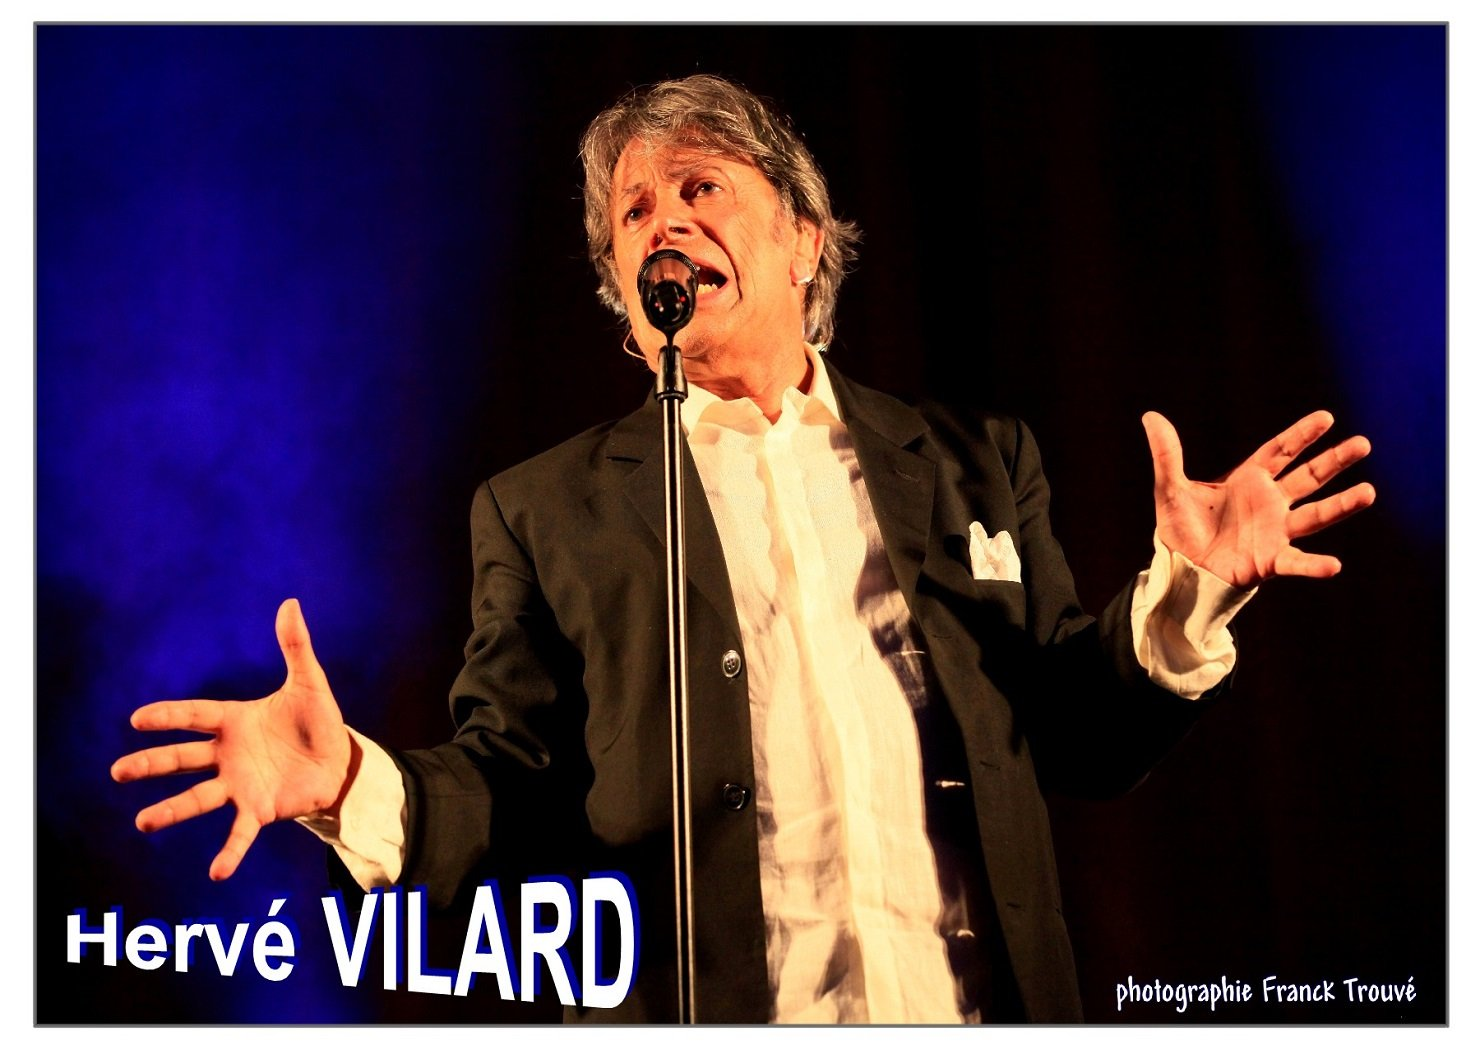 herve vilard photo franck trouve